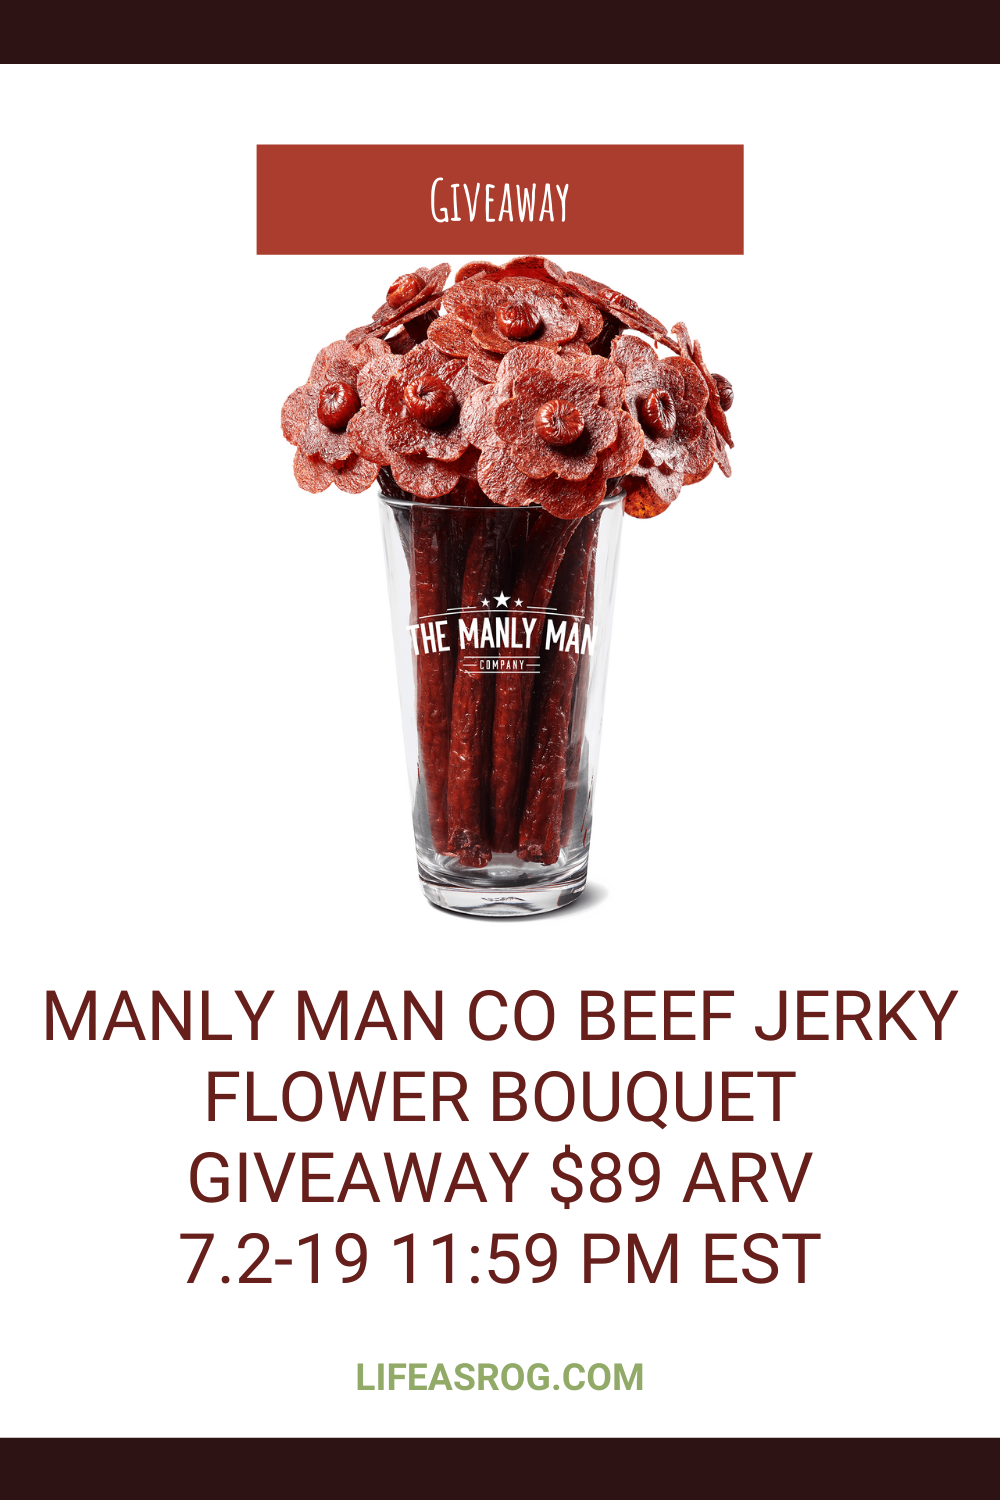 Manly Man Co Beef Jerky Flower Bouquet Giveaway $89 ARV